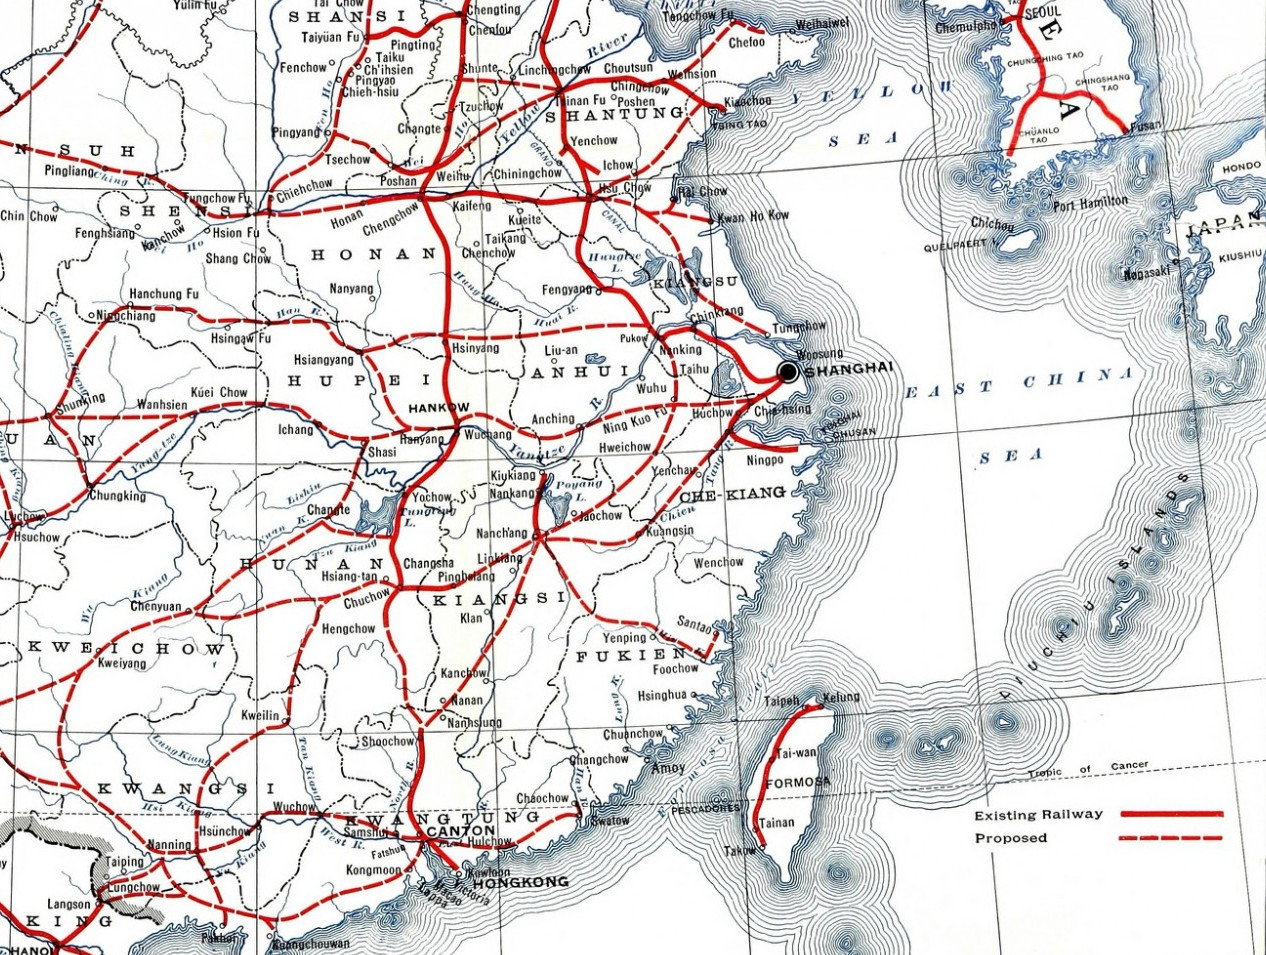 Railway Map of China, 1918. Source: Flickr, No known copyright restrictions.